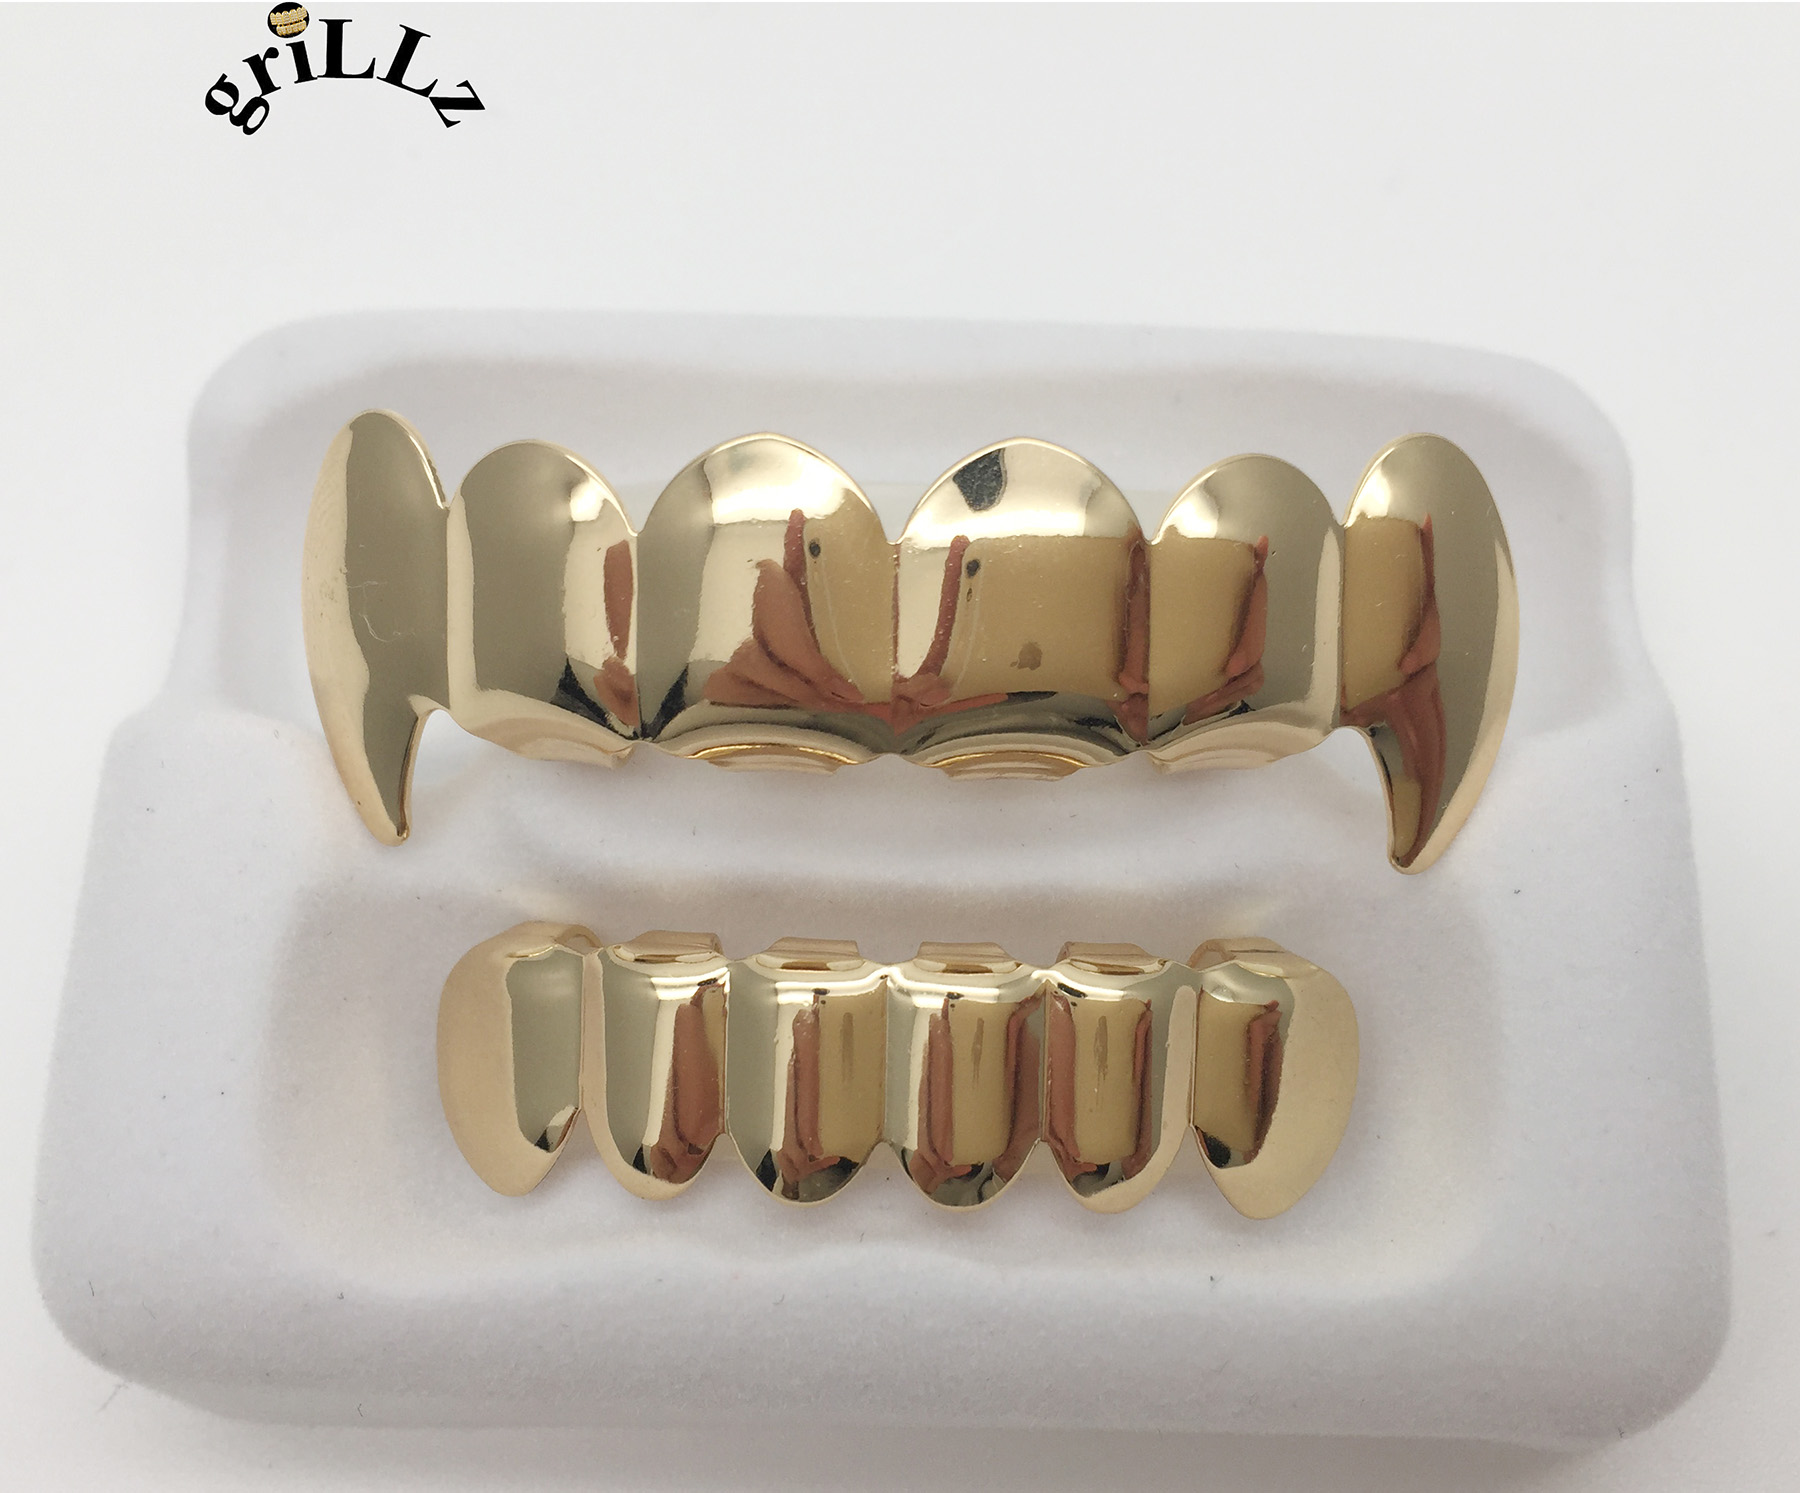 Grillz Brand BOXED HIPHOP TUSH TEETH VAMPIRE grillz TOP AND BOTTOM grillz SET WITH BOX body jewelry